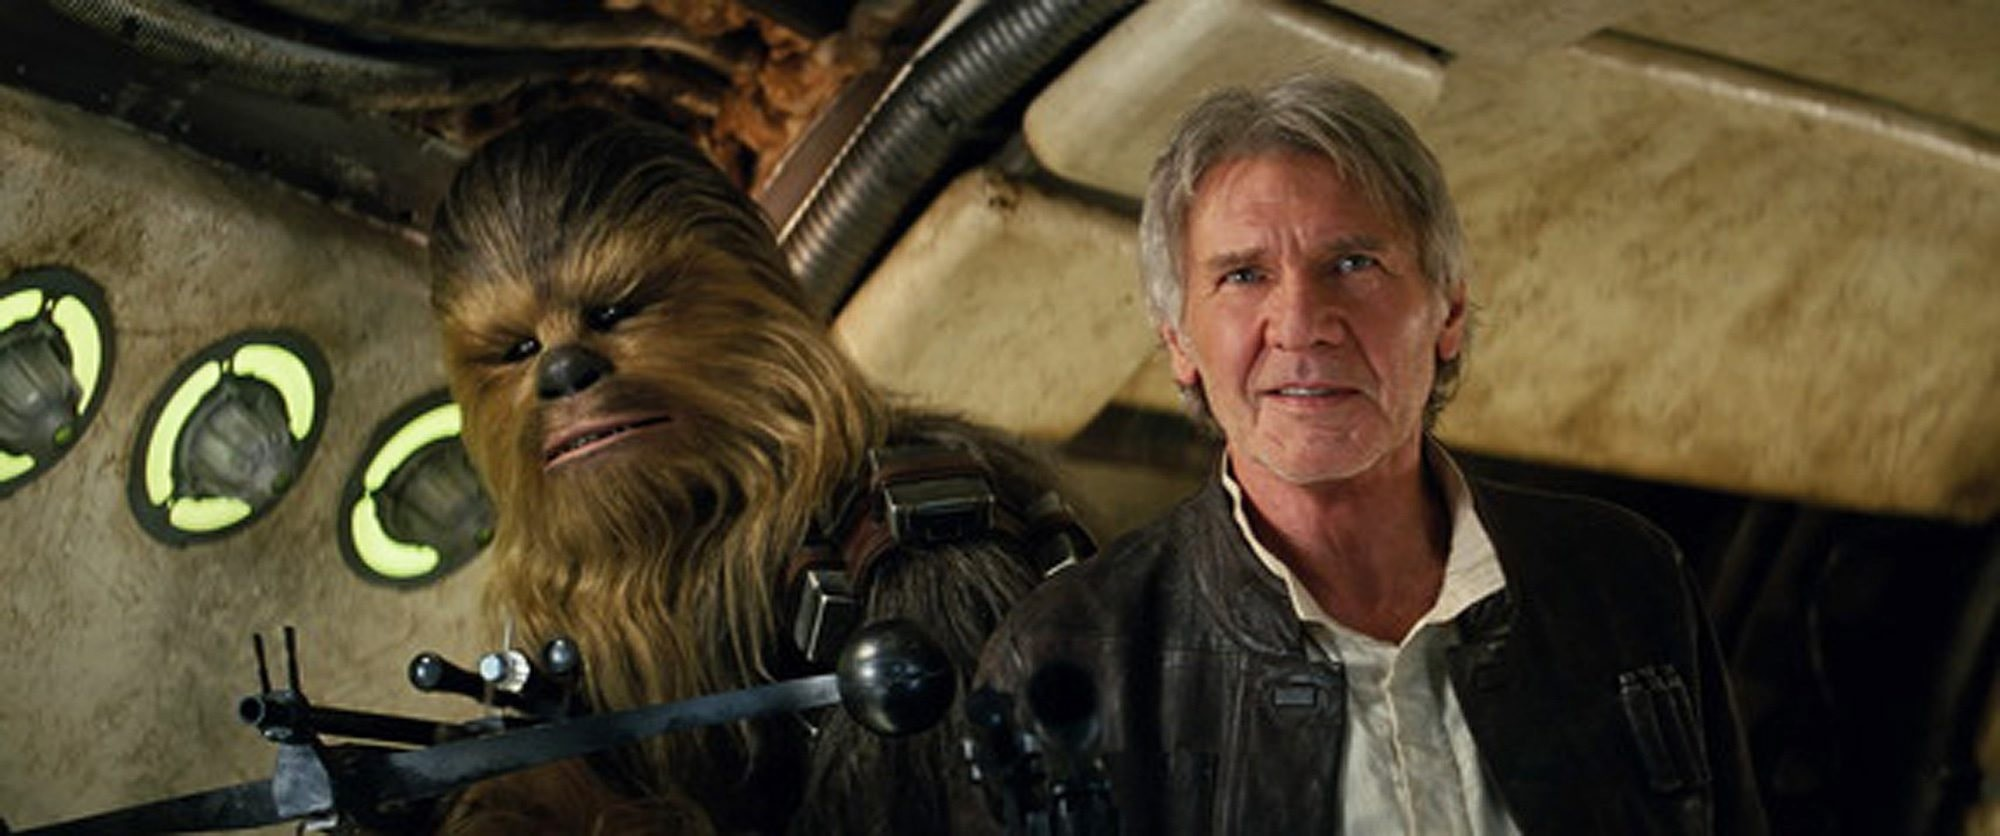 This photo provided by Lucasfilm shows Peter Mayhew as Chewbacca and Harrison Ford as Han Solo in ,Star Wars: The Force Awakens,, directed by J.J. Abrams. (AP Photo)